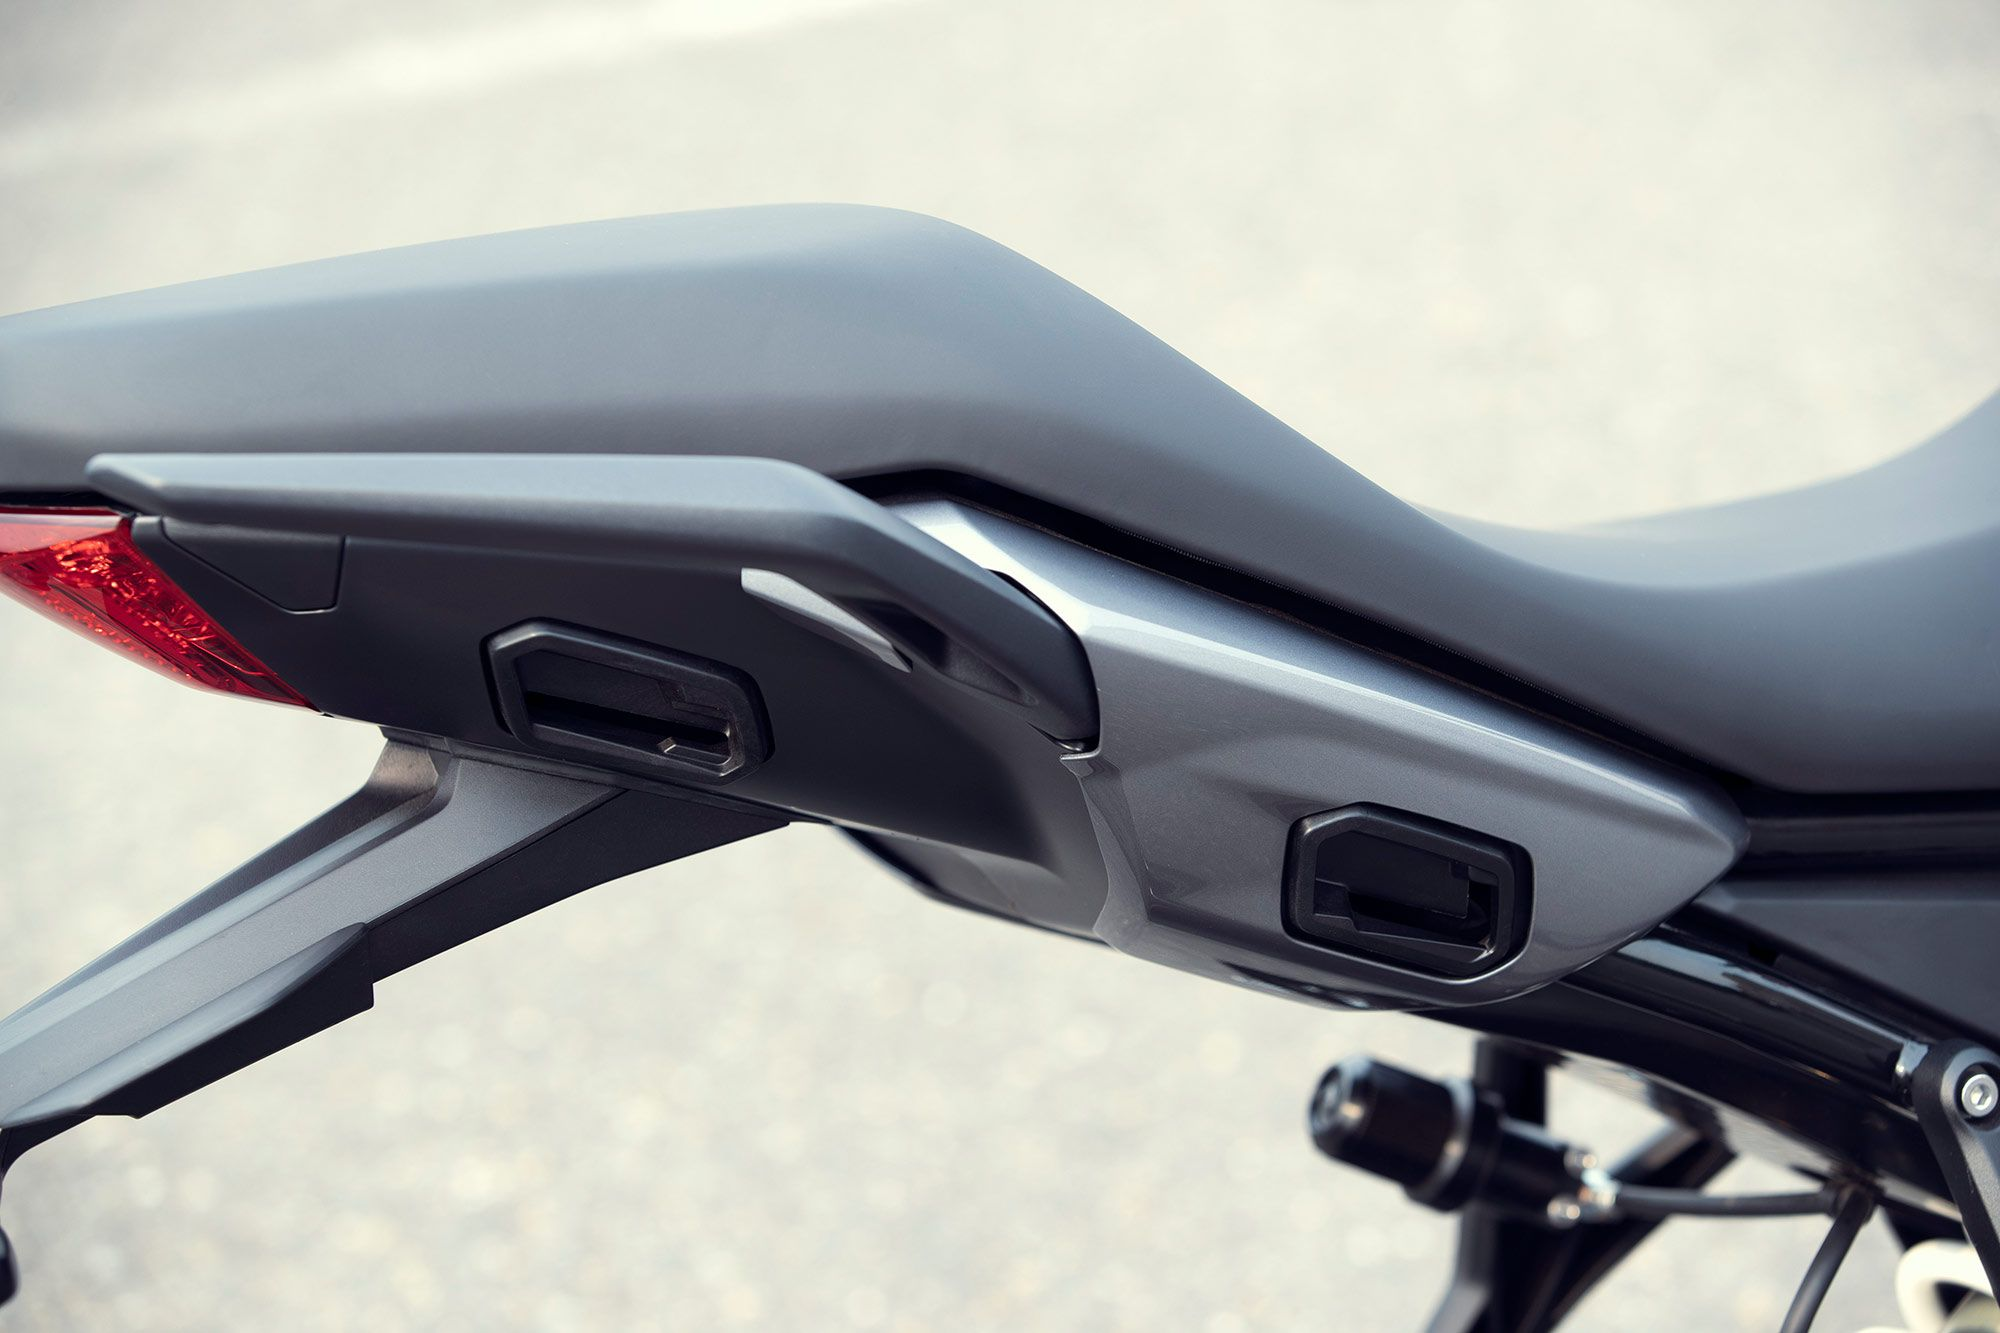 The Tigers two-up seating is comfortable with a relatively easy seat height of 32.9 inches for the pilot and integrated pillion grab handles fitted as standard on both sides.